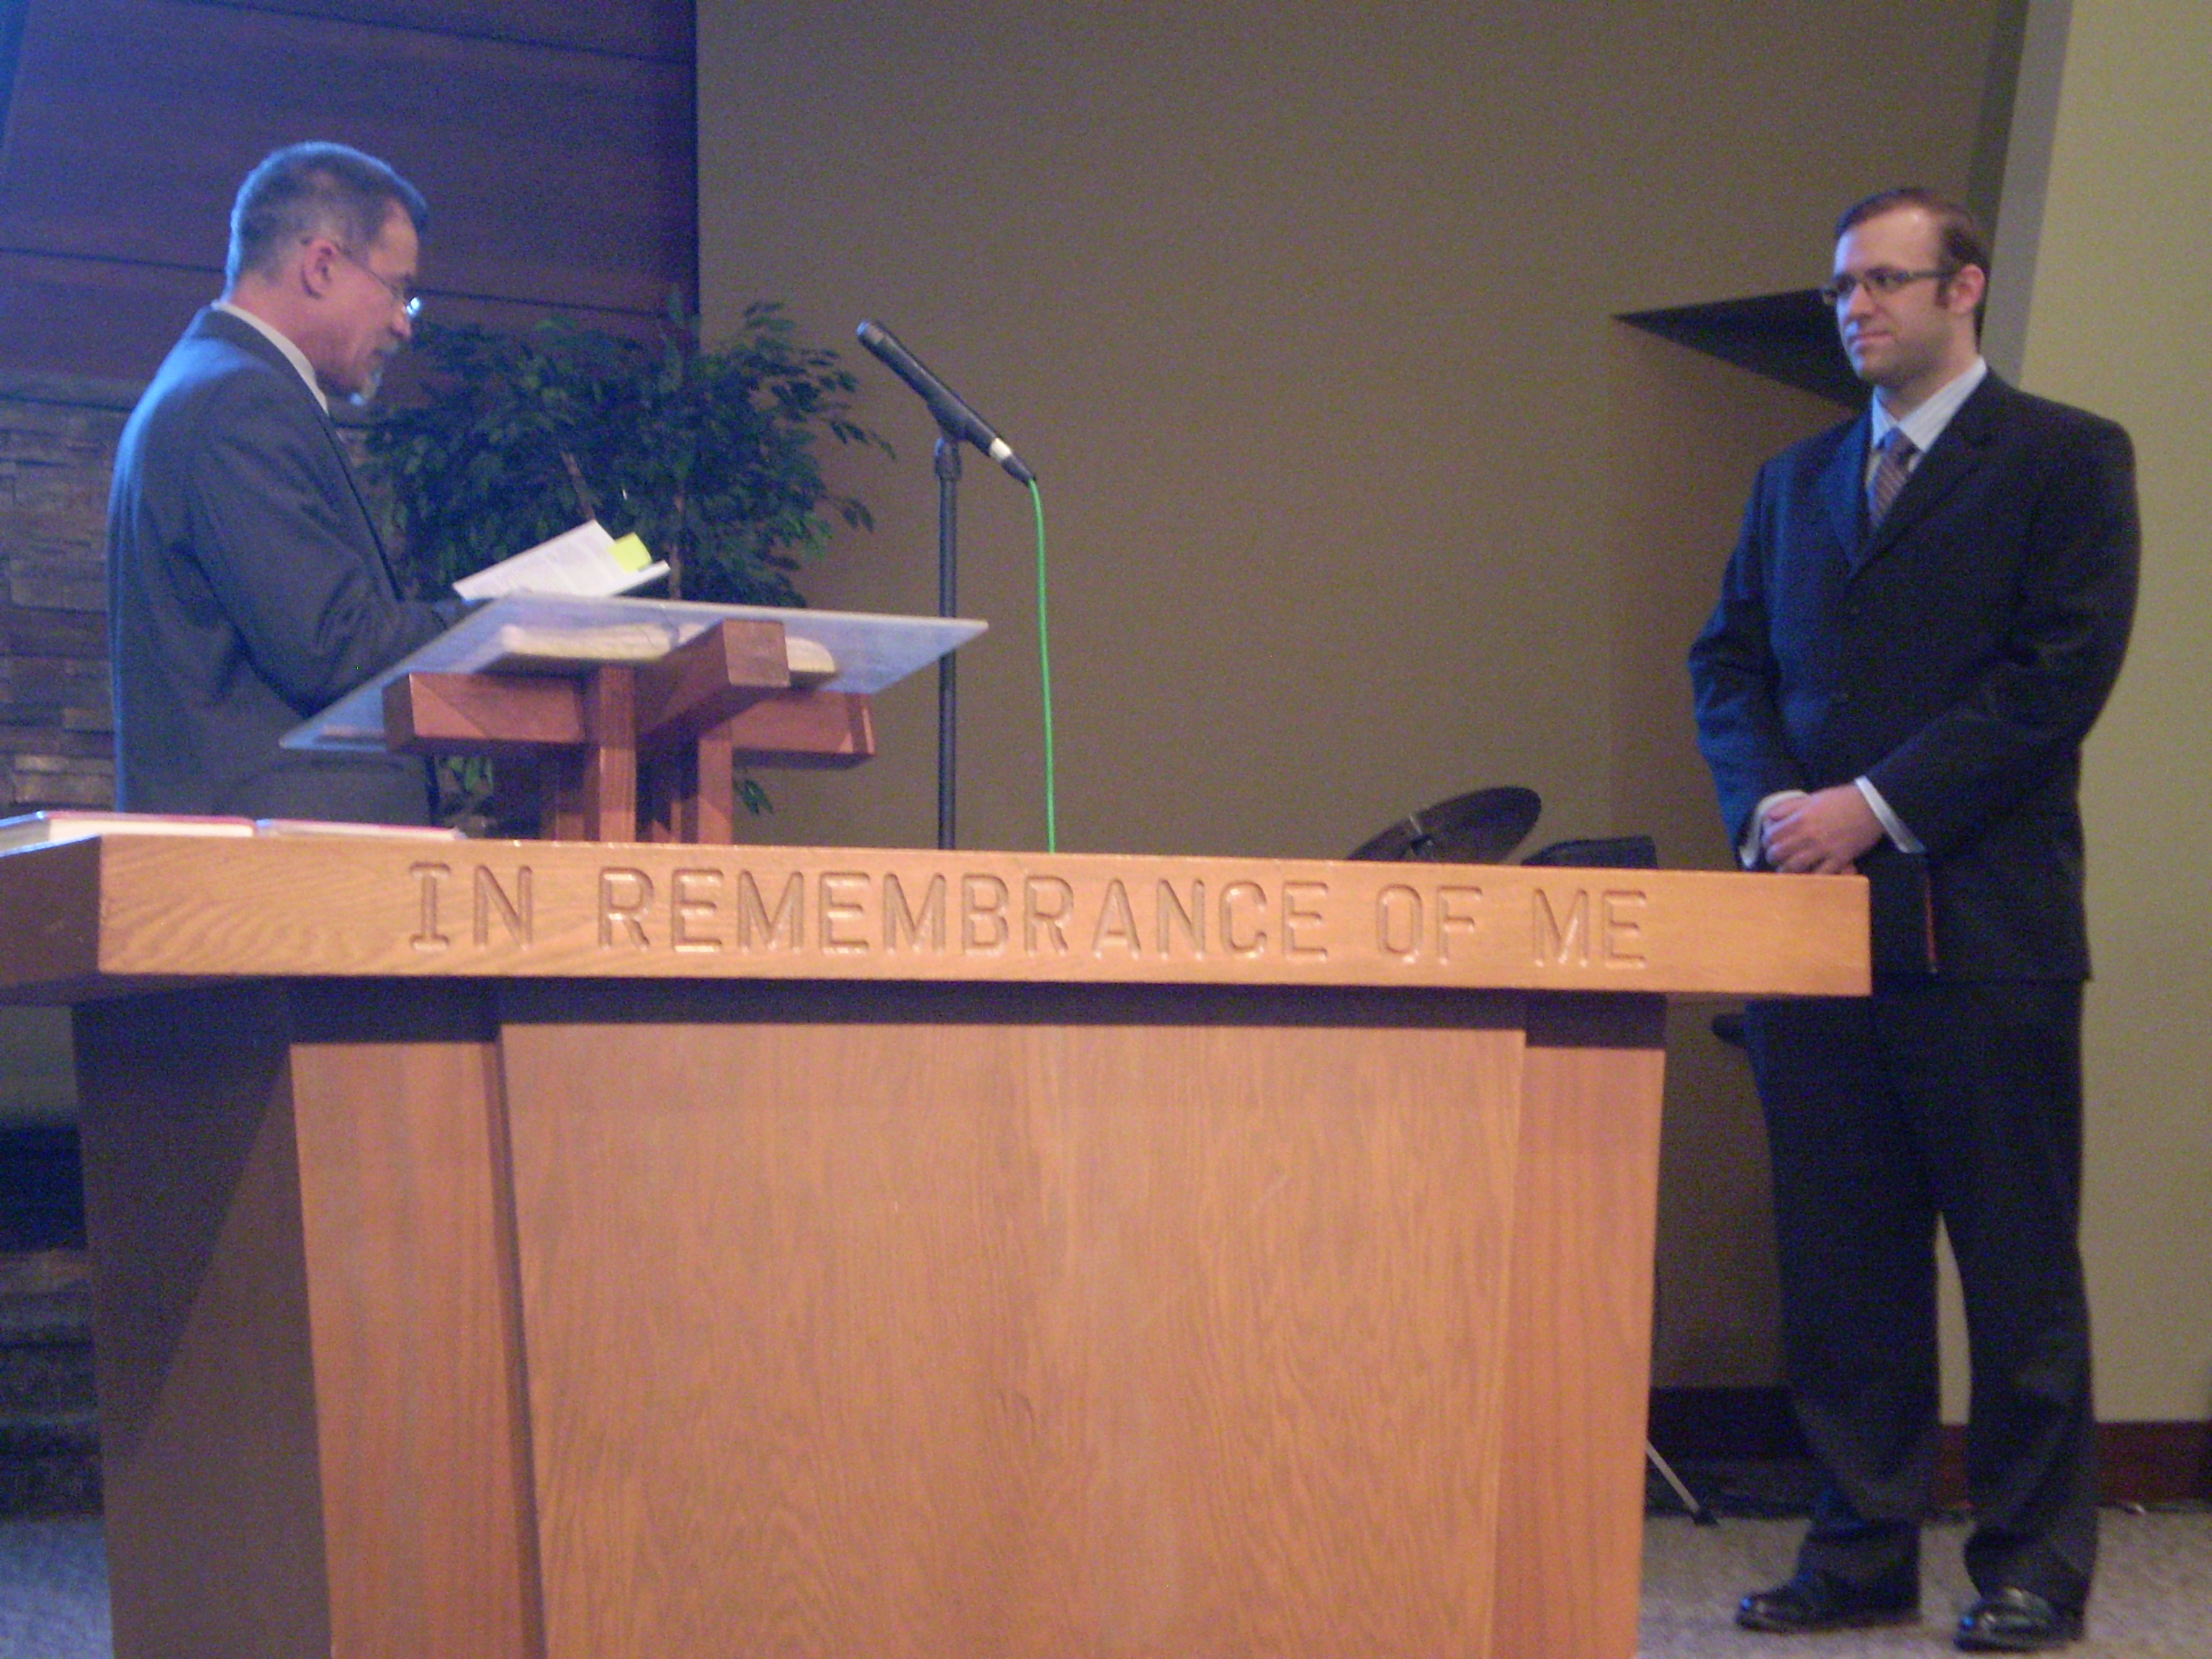 Matt_Barker_Vows.JPG - Matt Barker taking his ordination vows, special meeting of the Presbytery of the Northwest, May 14, 2010, Kent, Washington